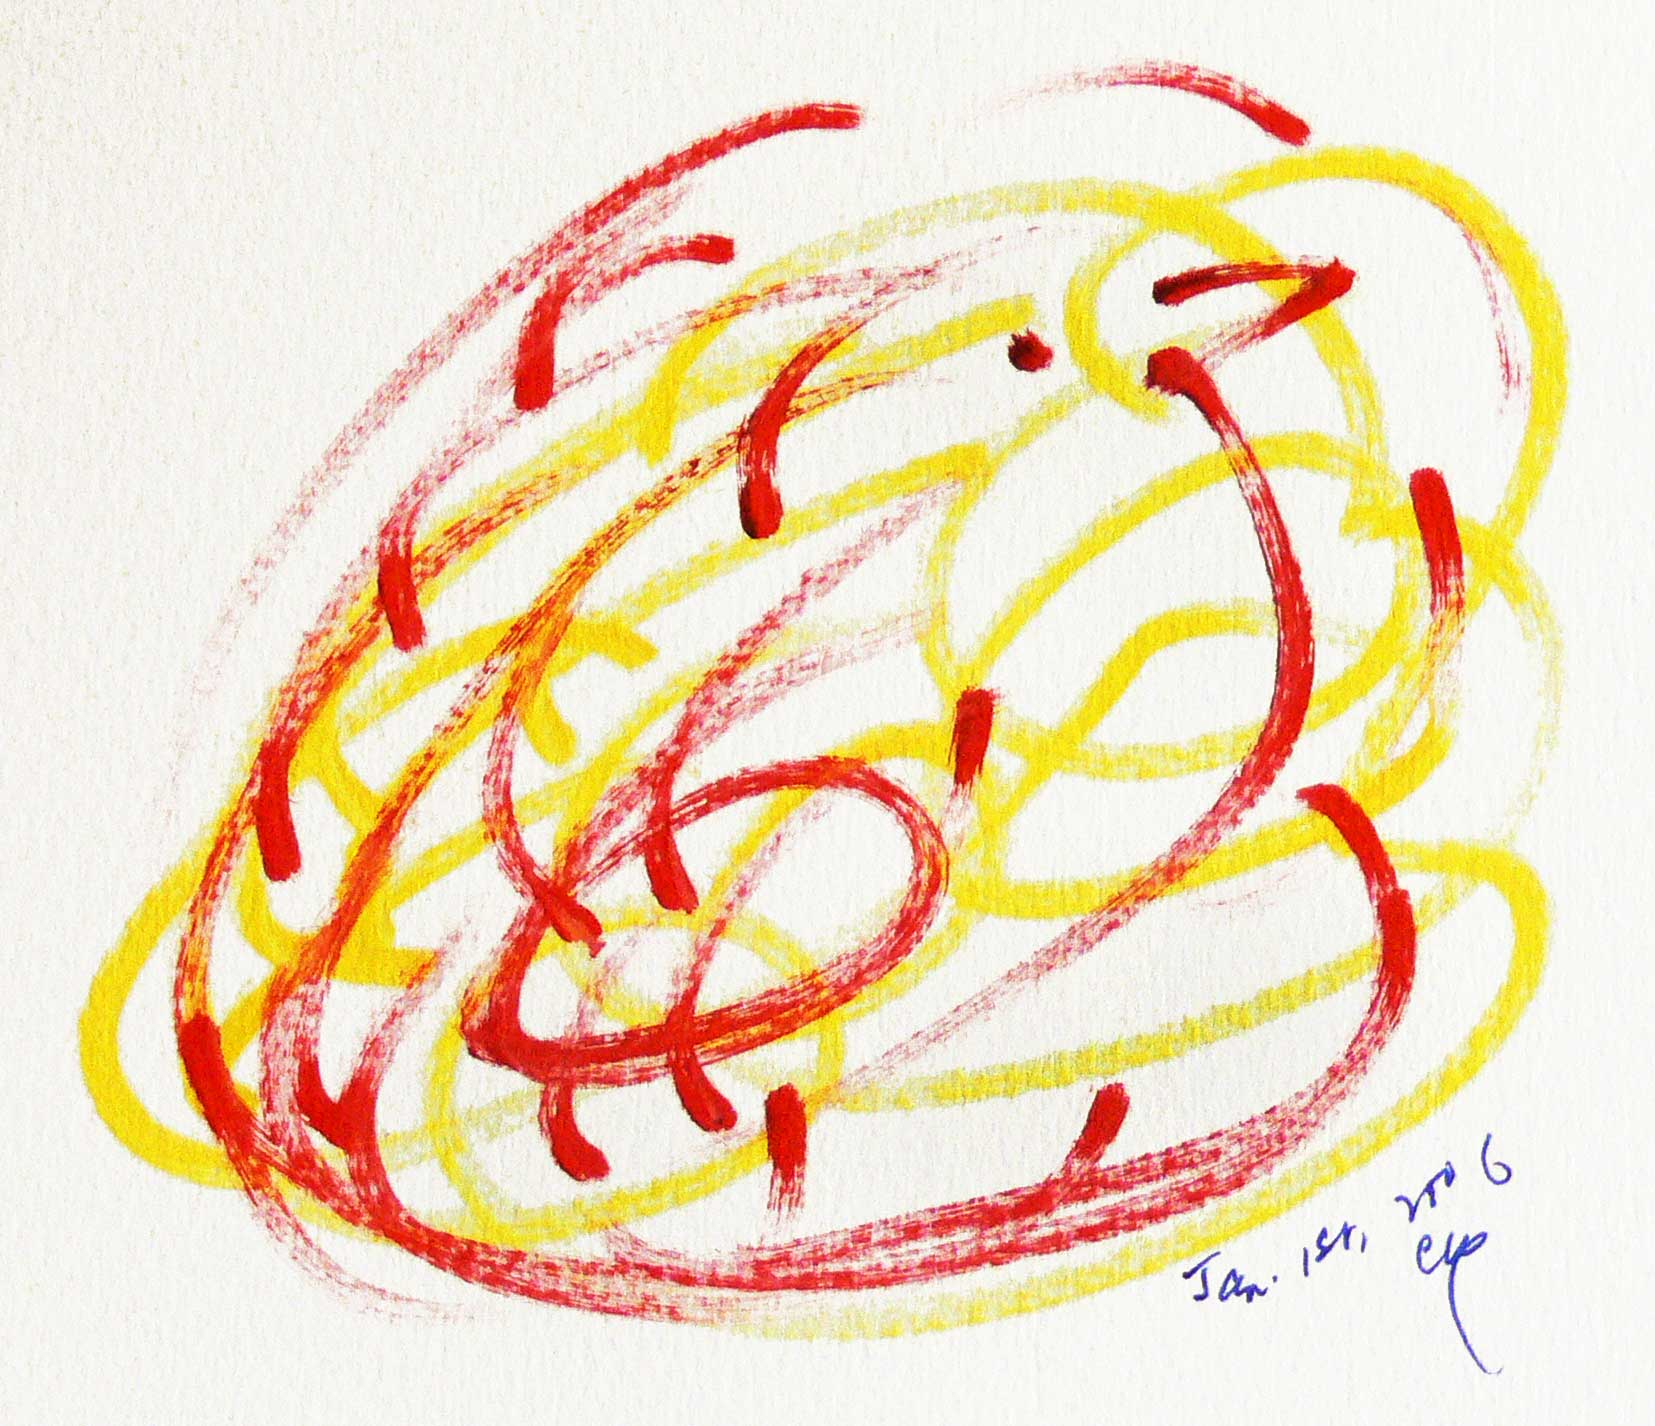 Bird-Drawing-by-Sri-Chinmoy-1-1-2006-3a